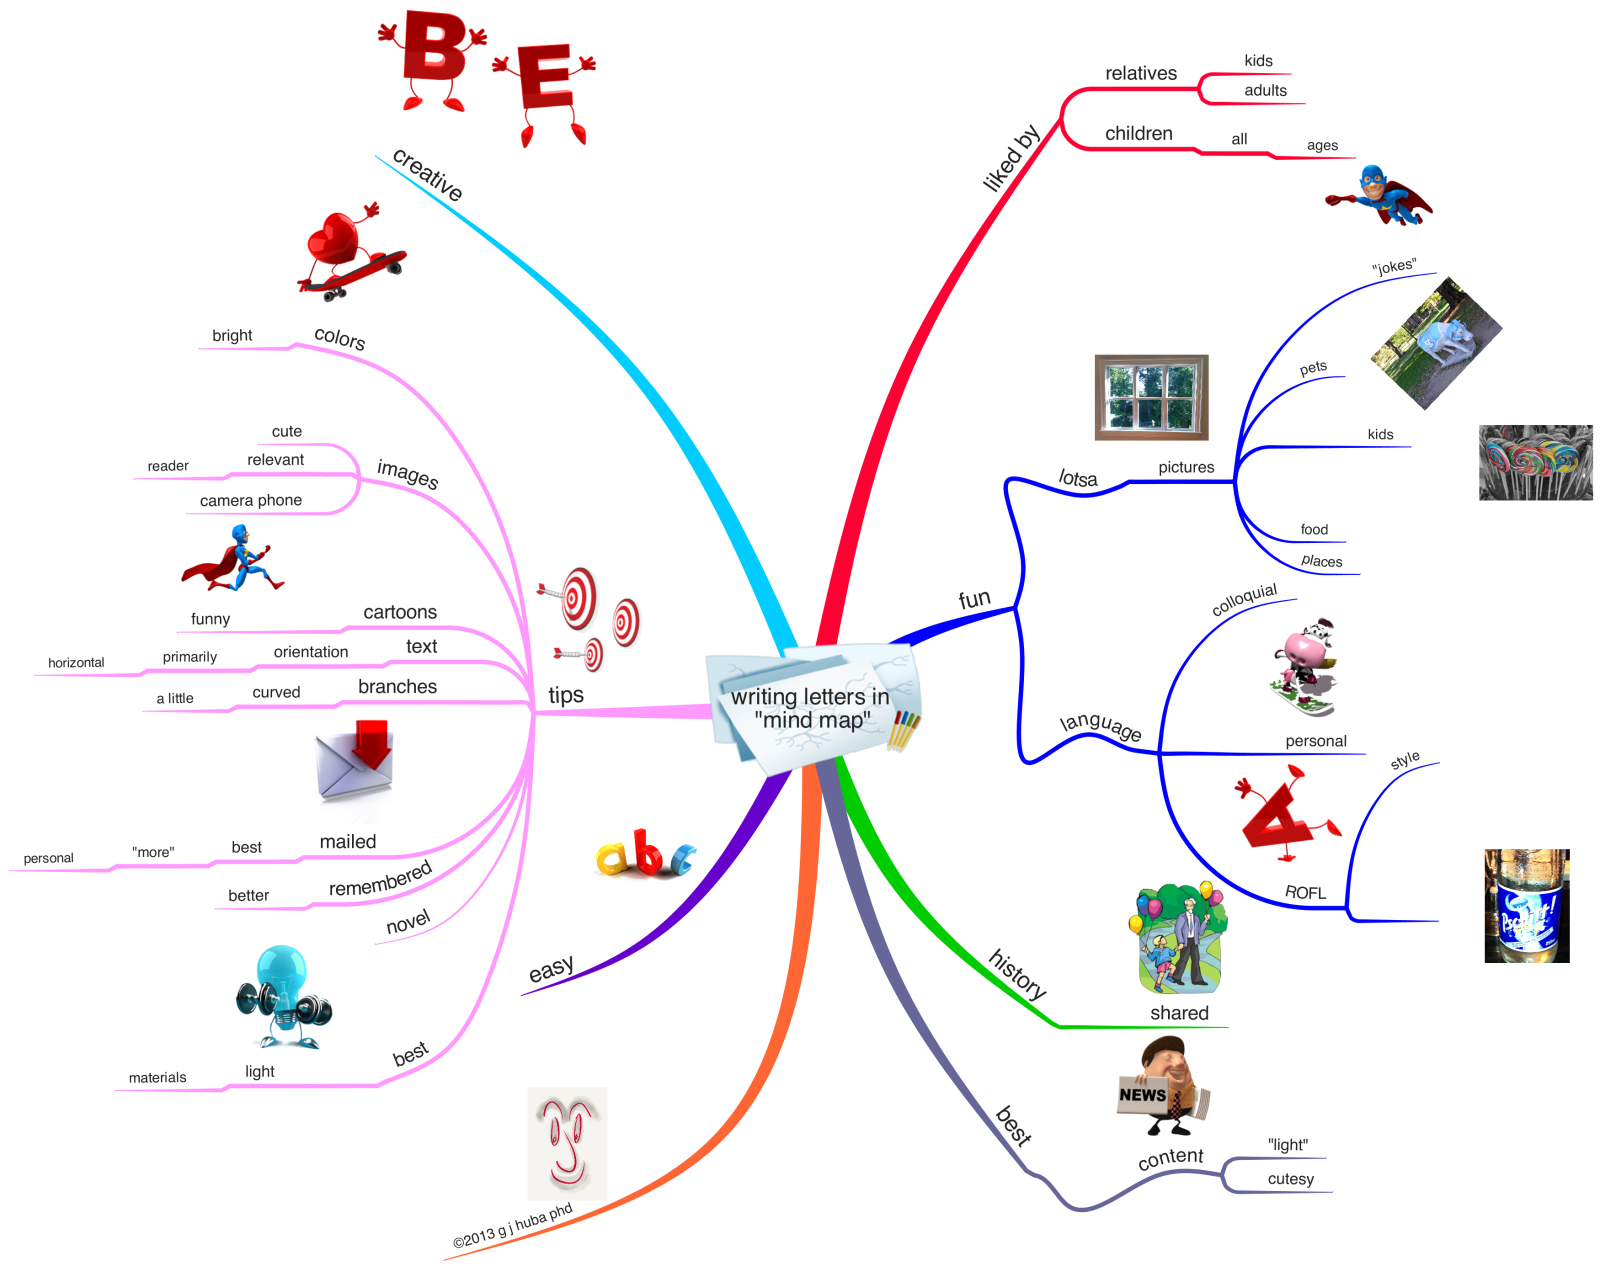 I Like To Write Personal Letters In Mind Map Mind Map Writing Mindfulness